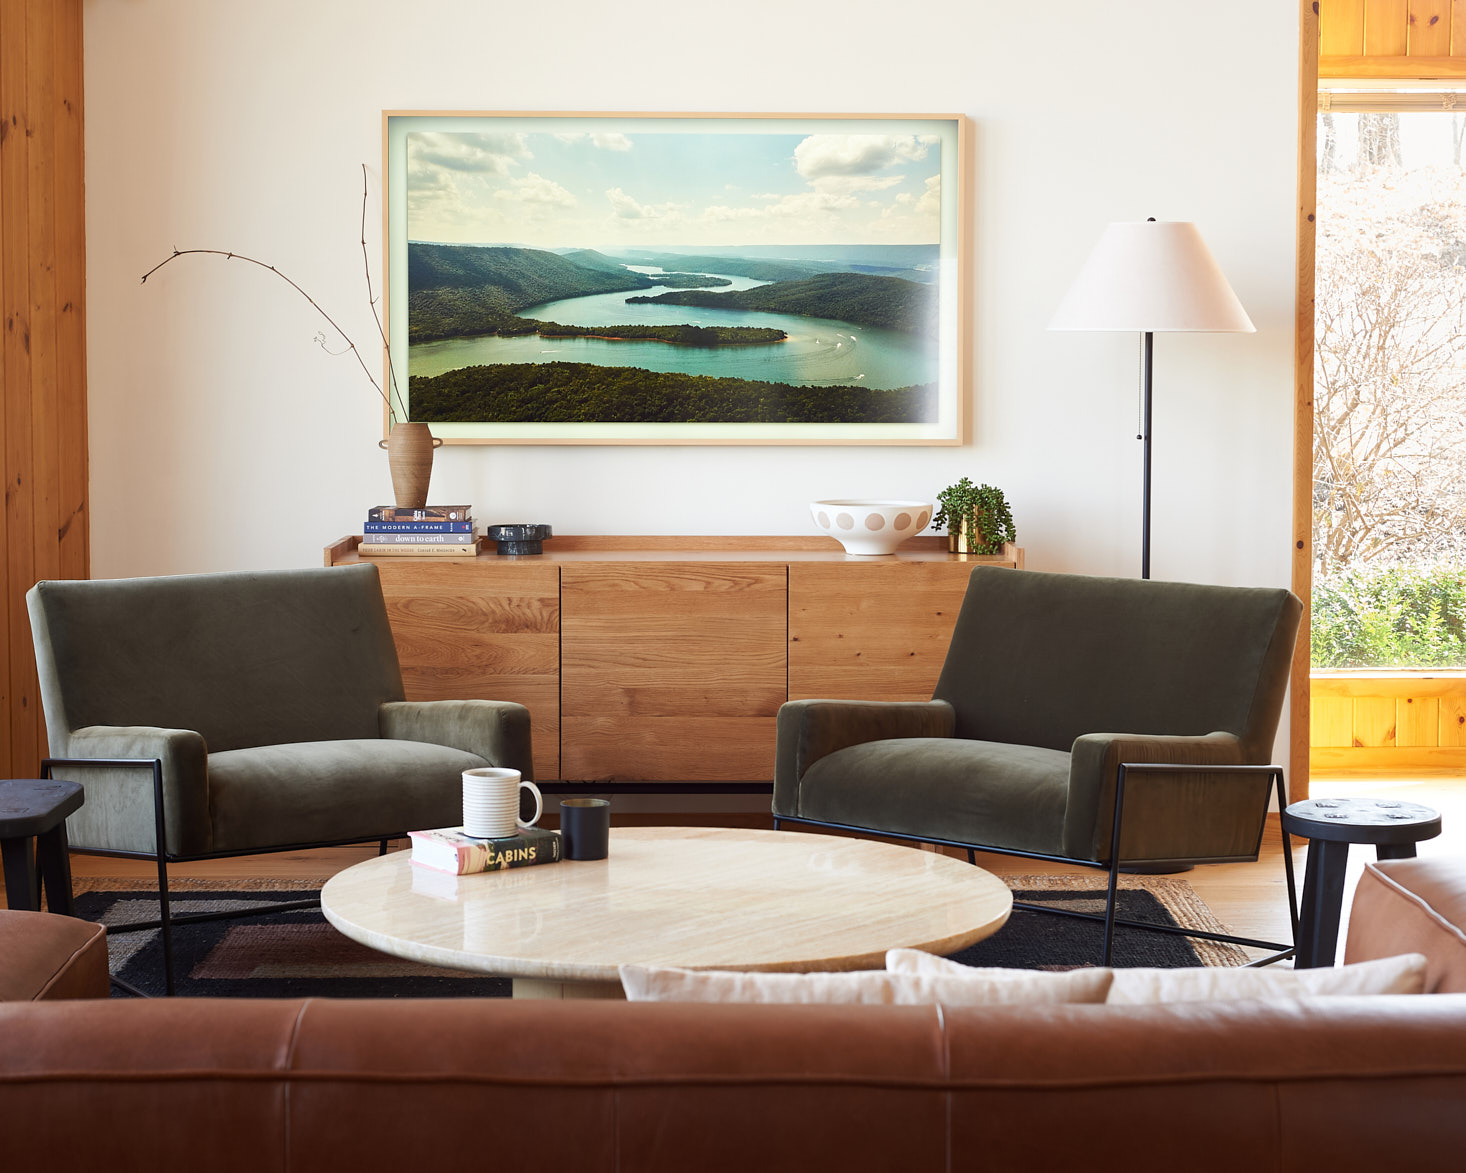 Living Room with Article Madera Sideboard and Regis Chairs